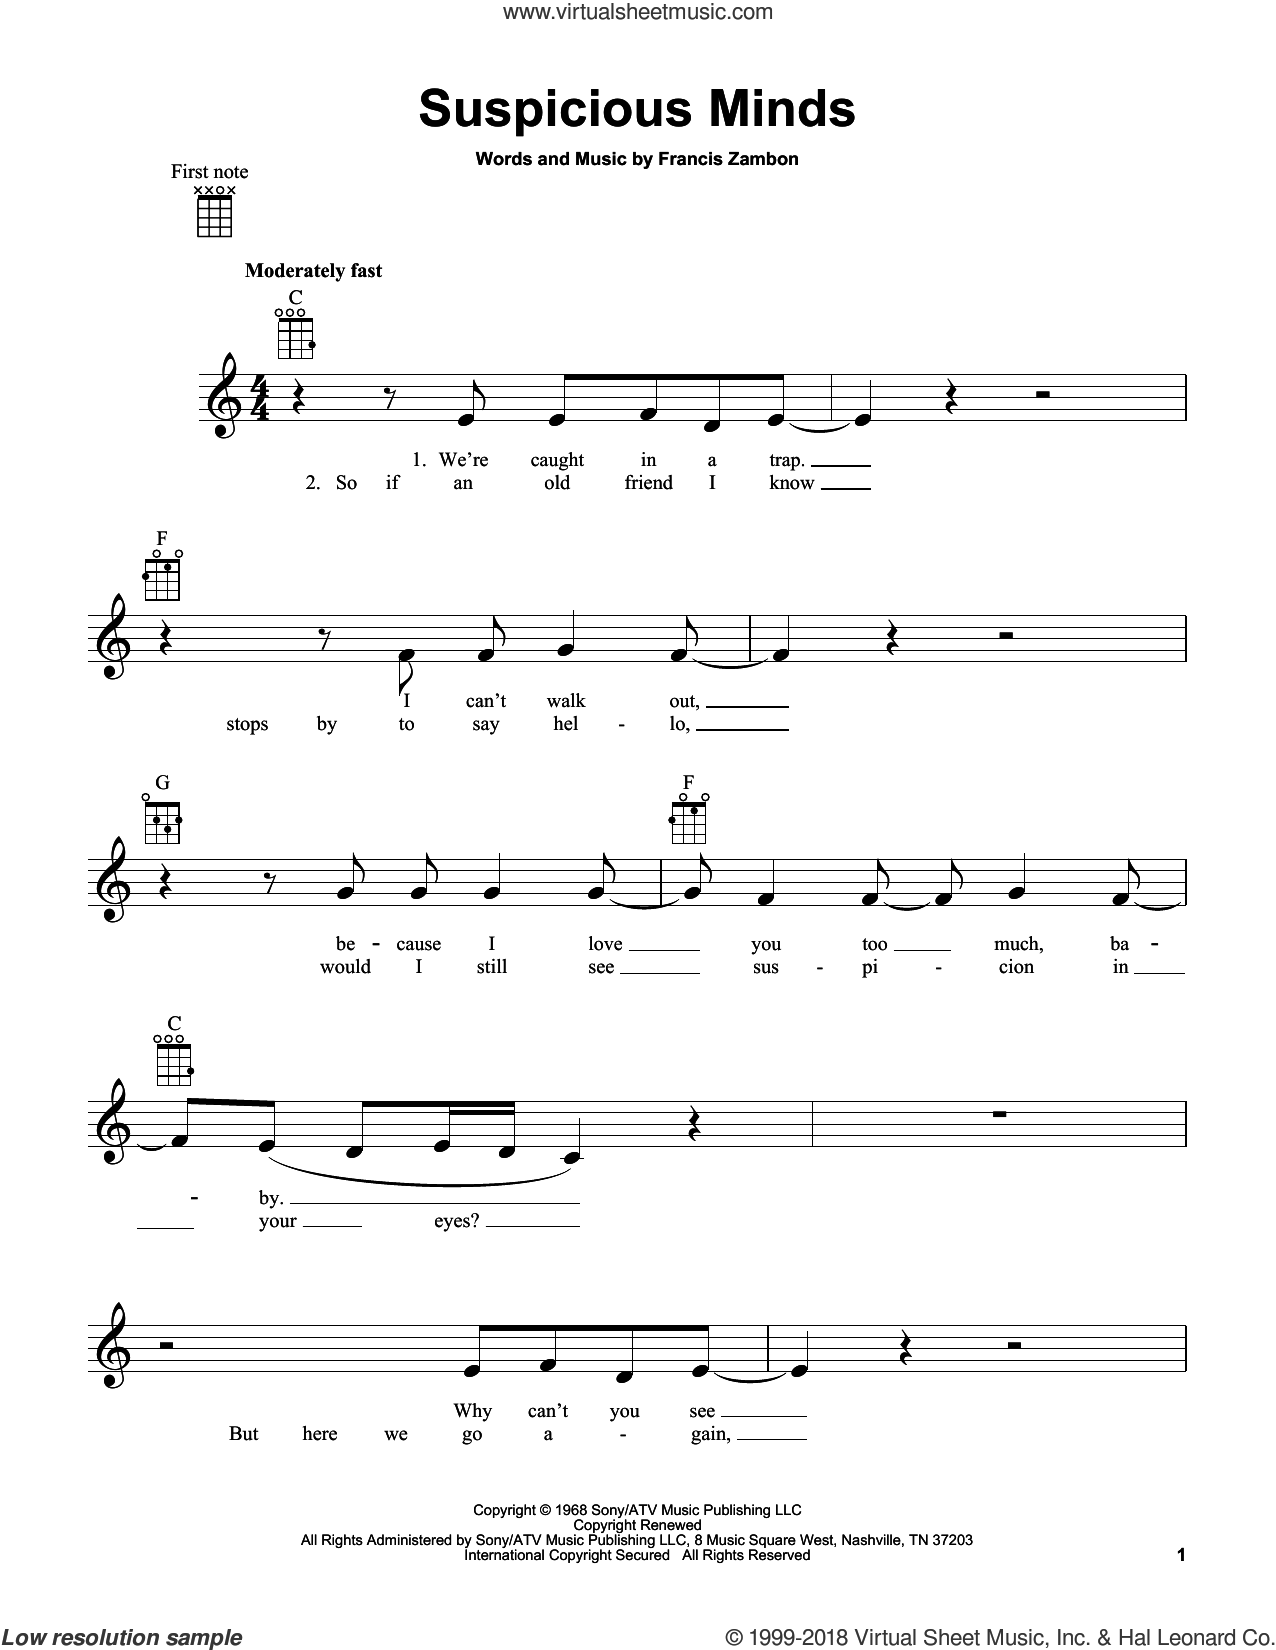 Suspicious Minds sheet music for ukulele by Francis Zambon